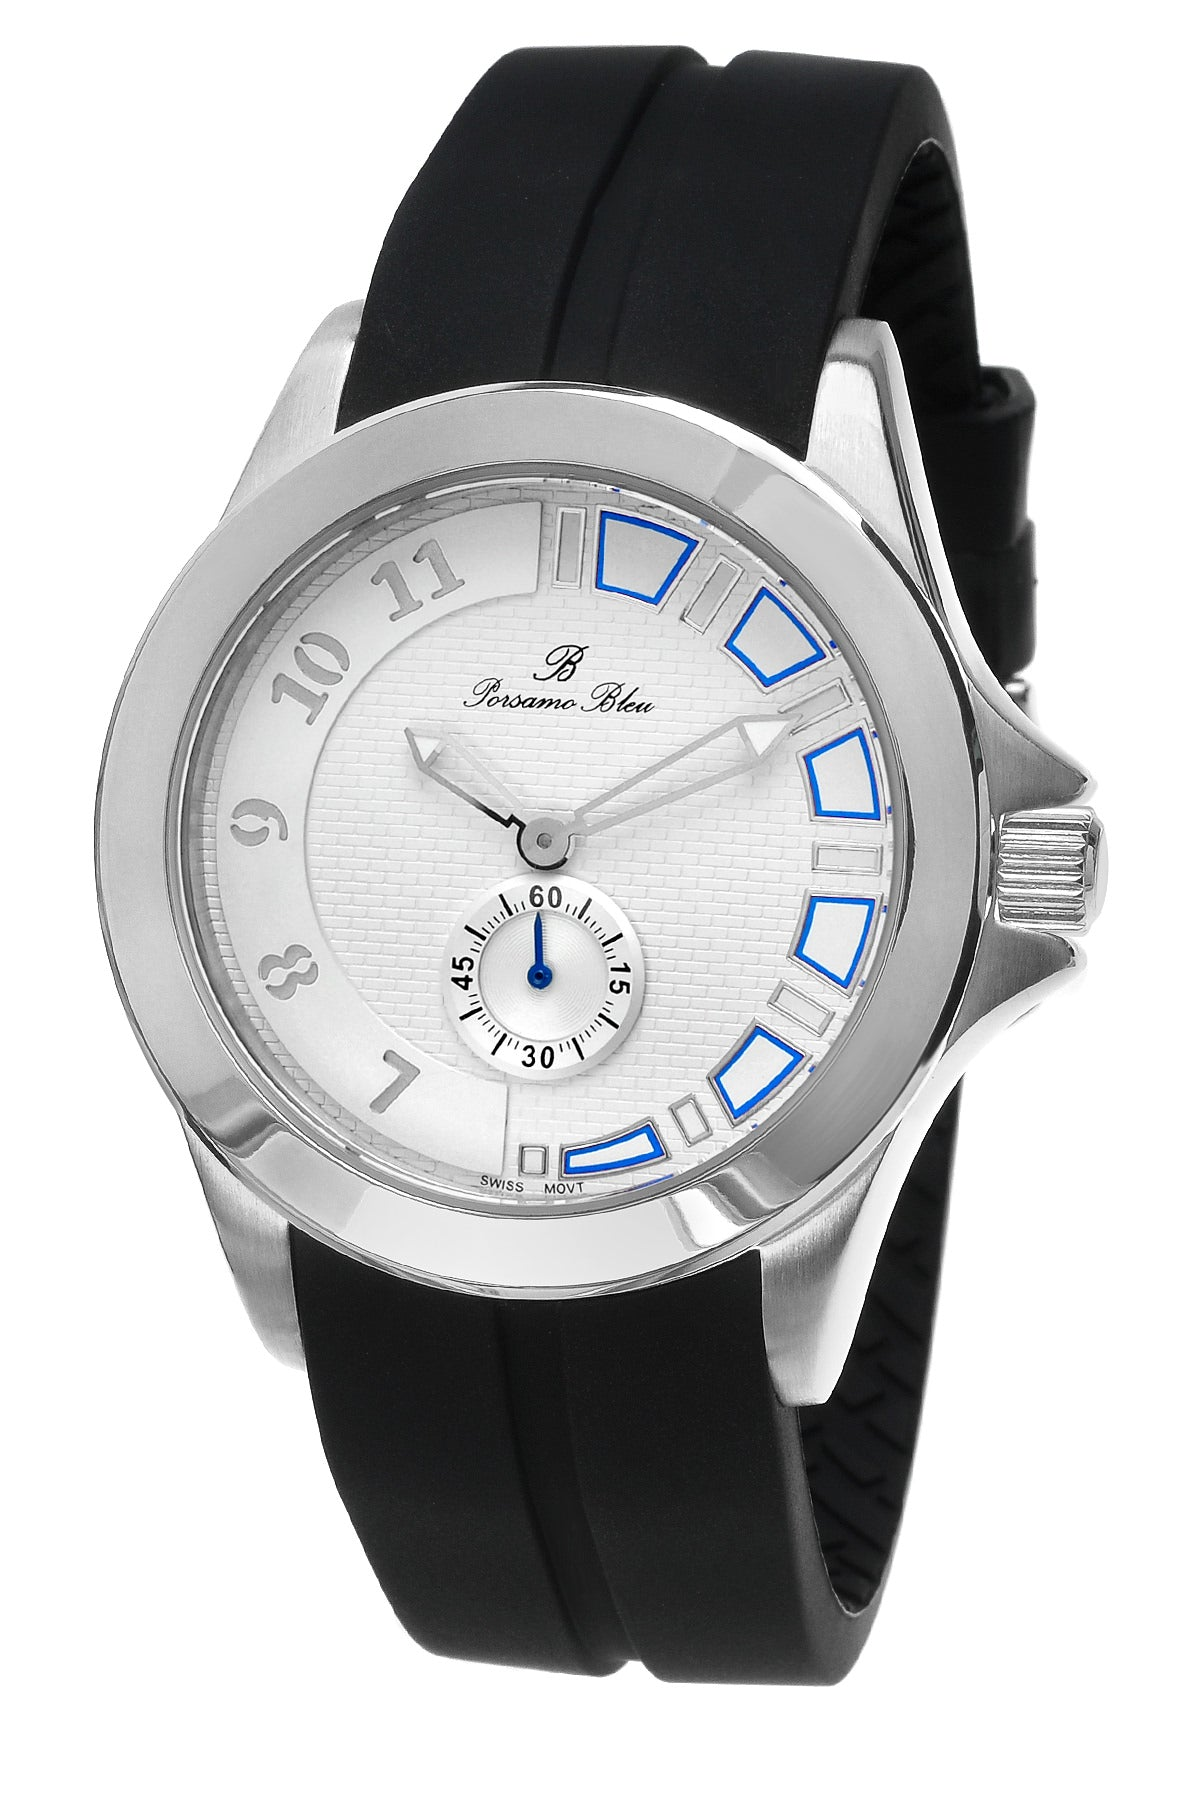 Porsamo Bleu Soho luxury men's watch, silicone strap, silver, black 044ASOR